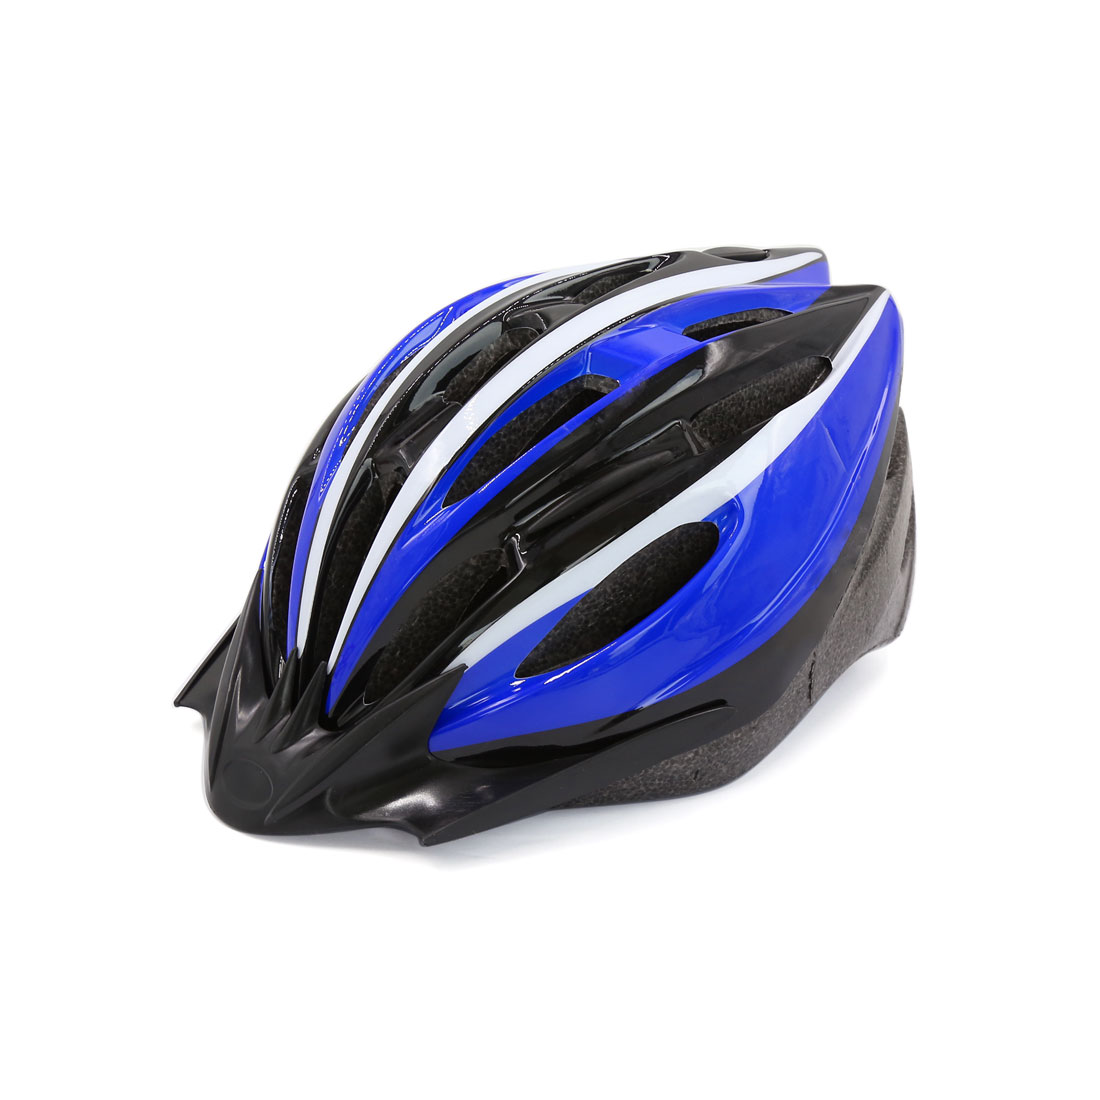 Adult Hollow Design Adjustable Strap Mountain Road Bike Bicycle Helmet Blue